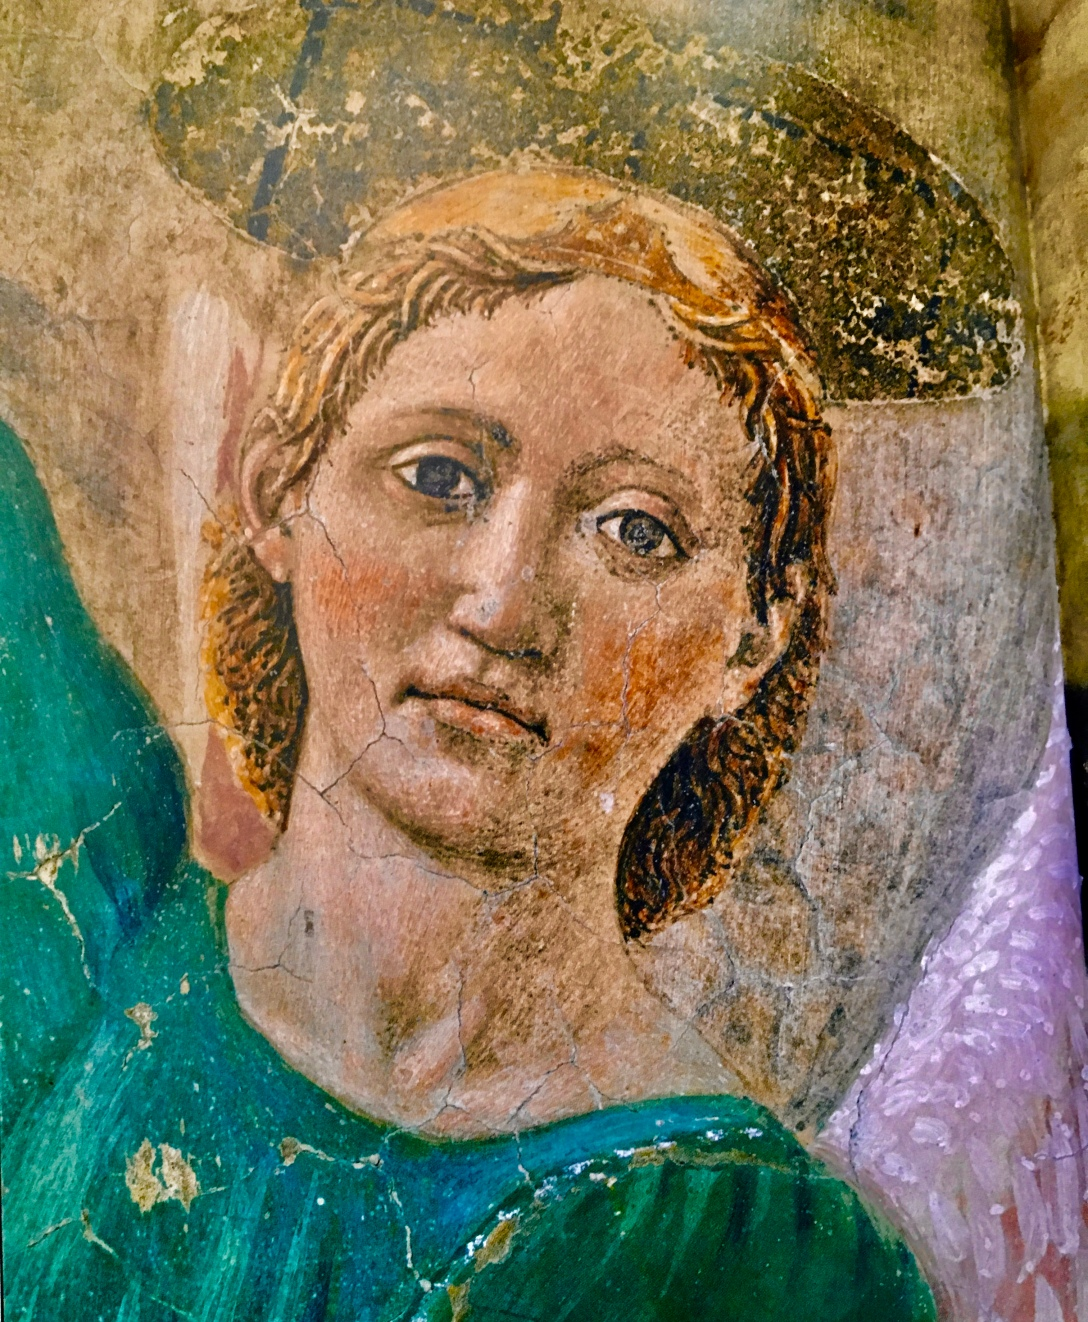 image of angel in green robe